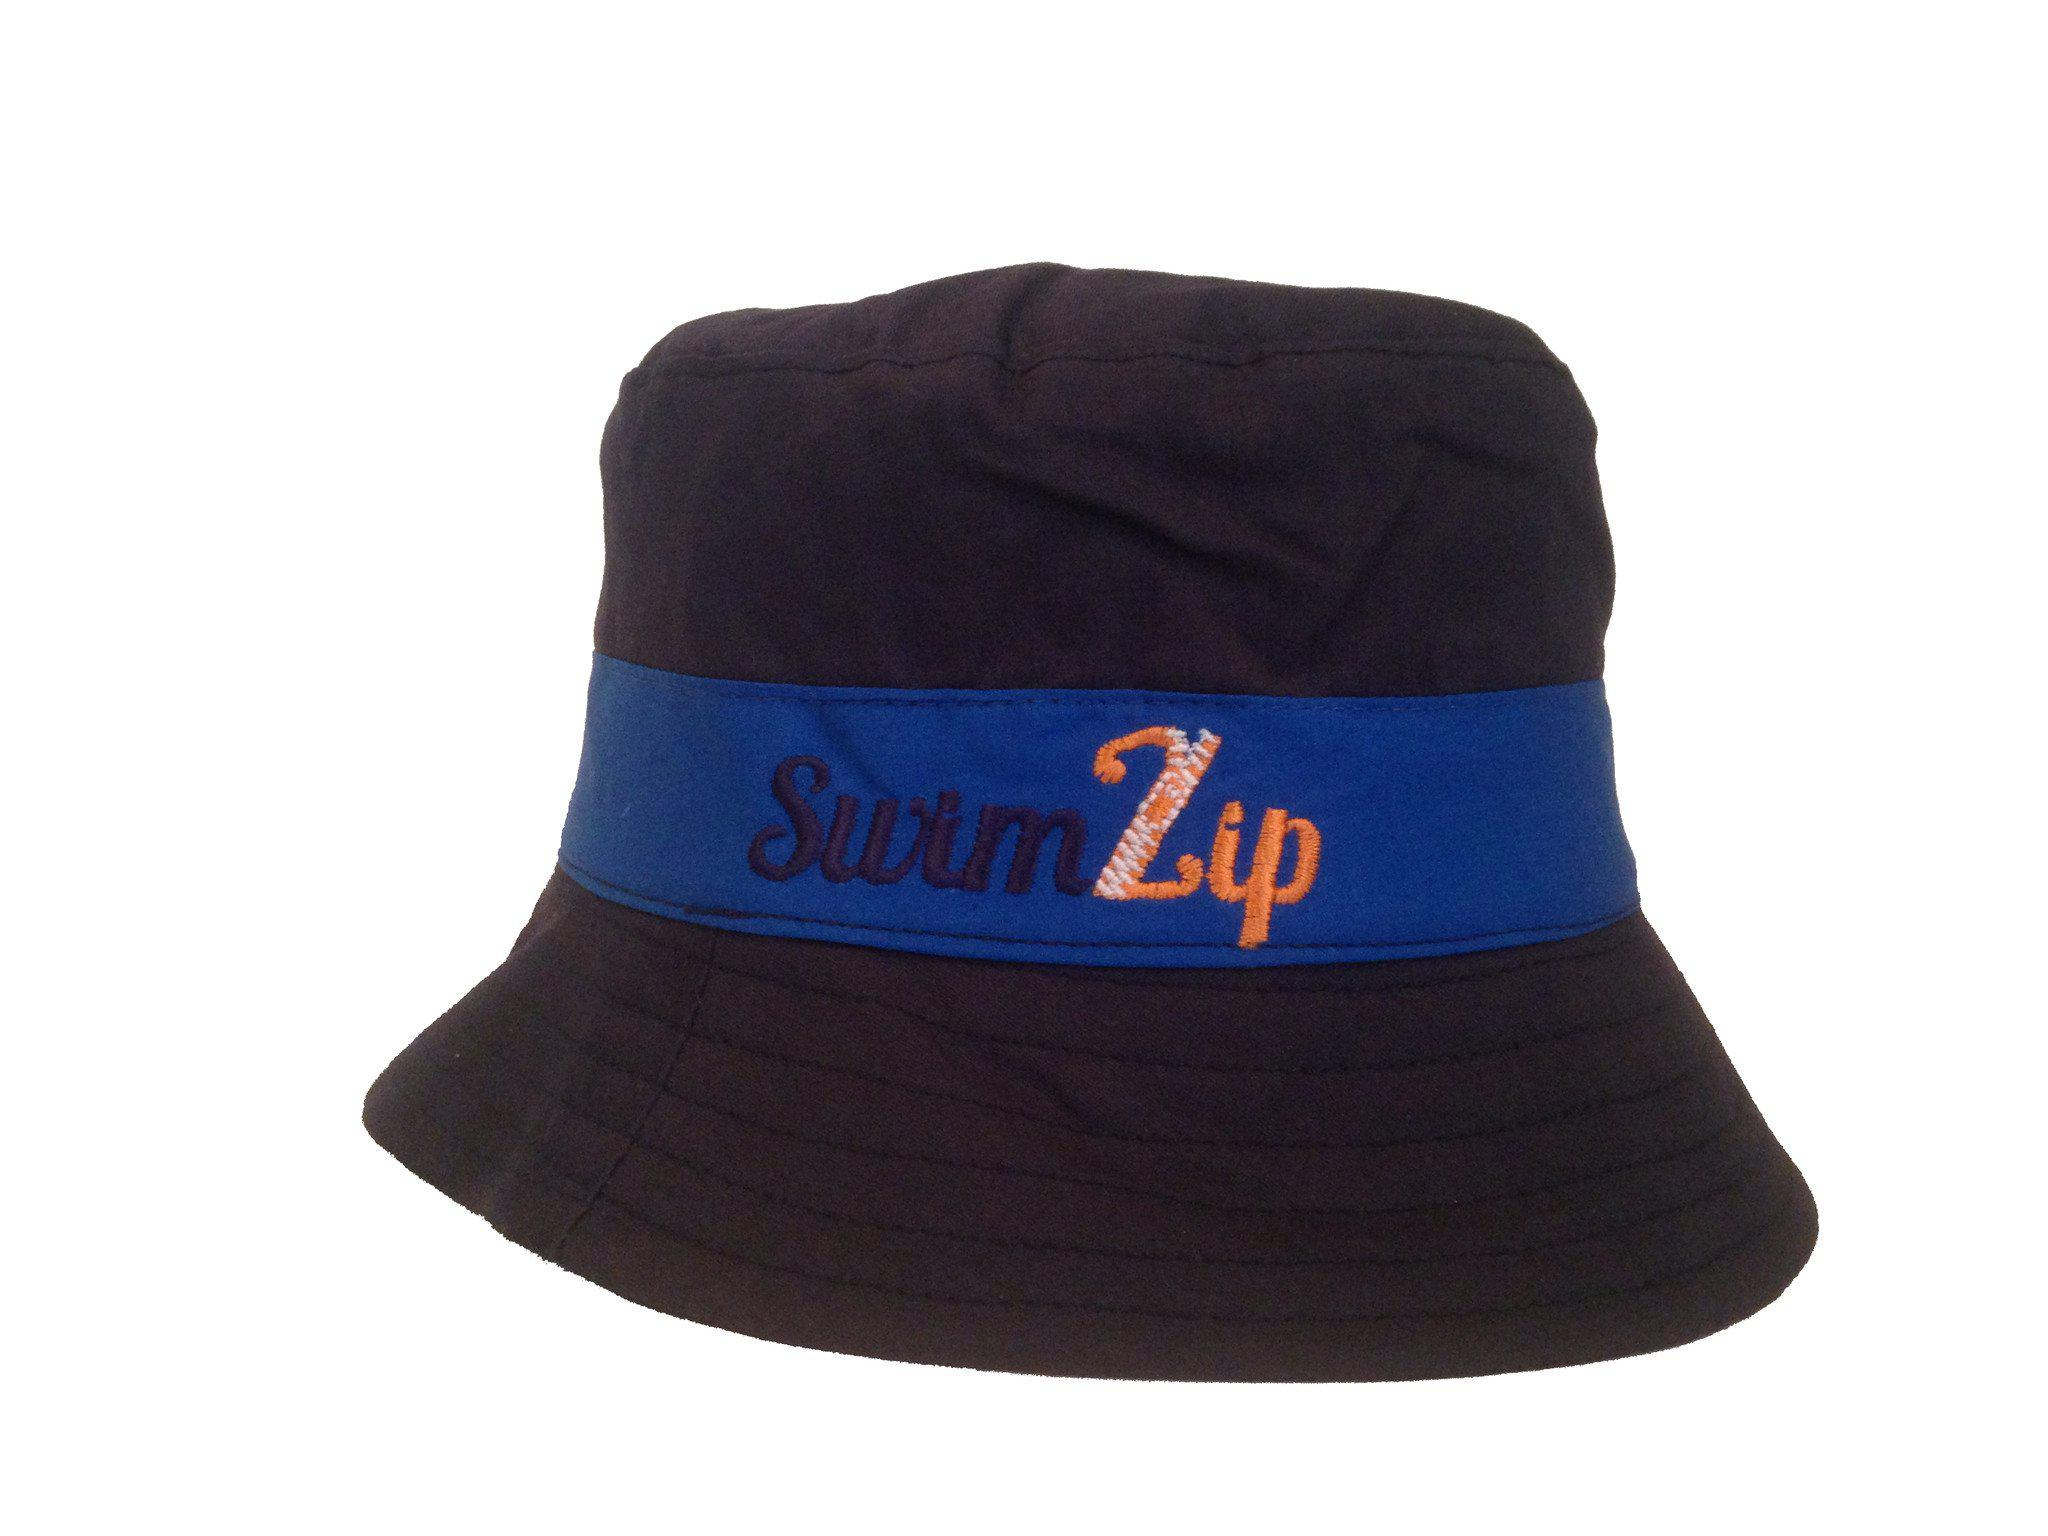 clearance boy bucket hat navy